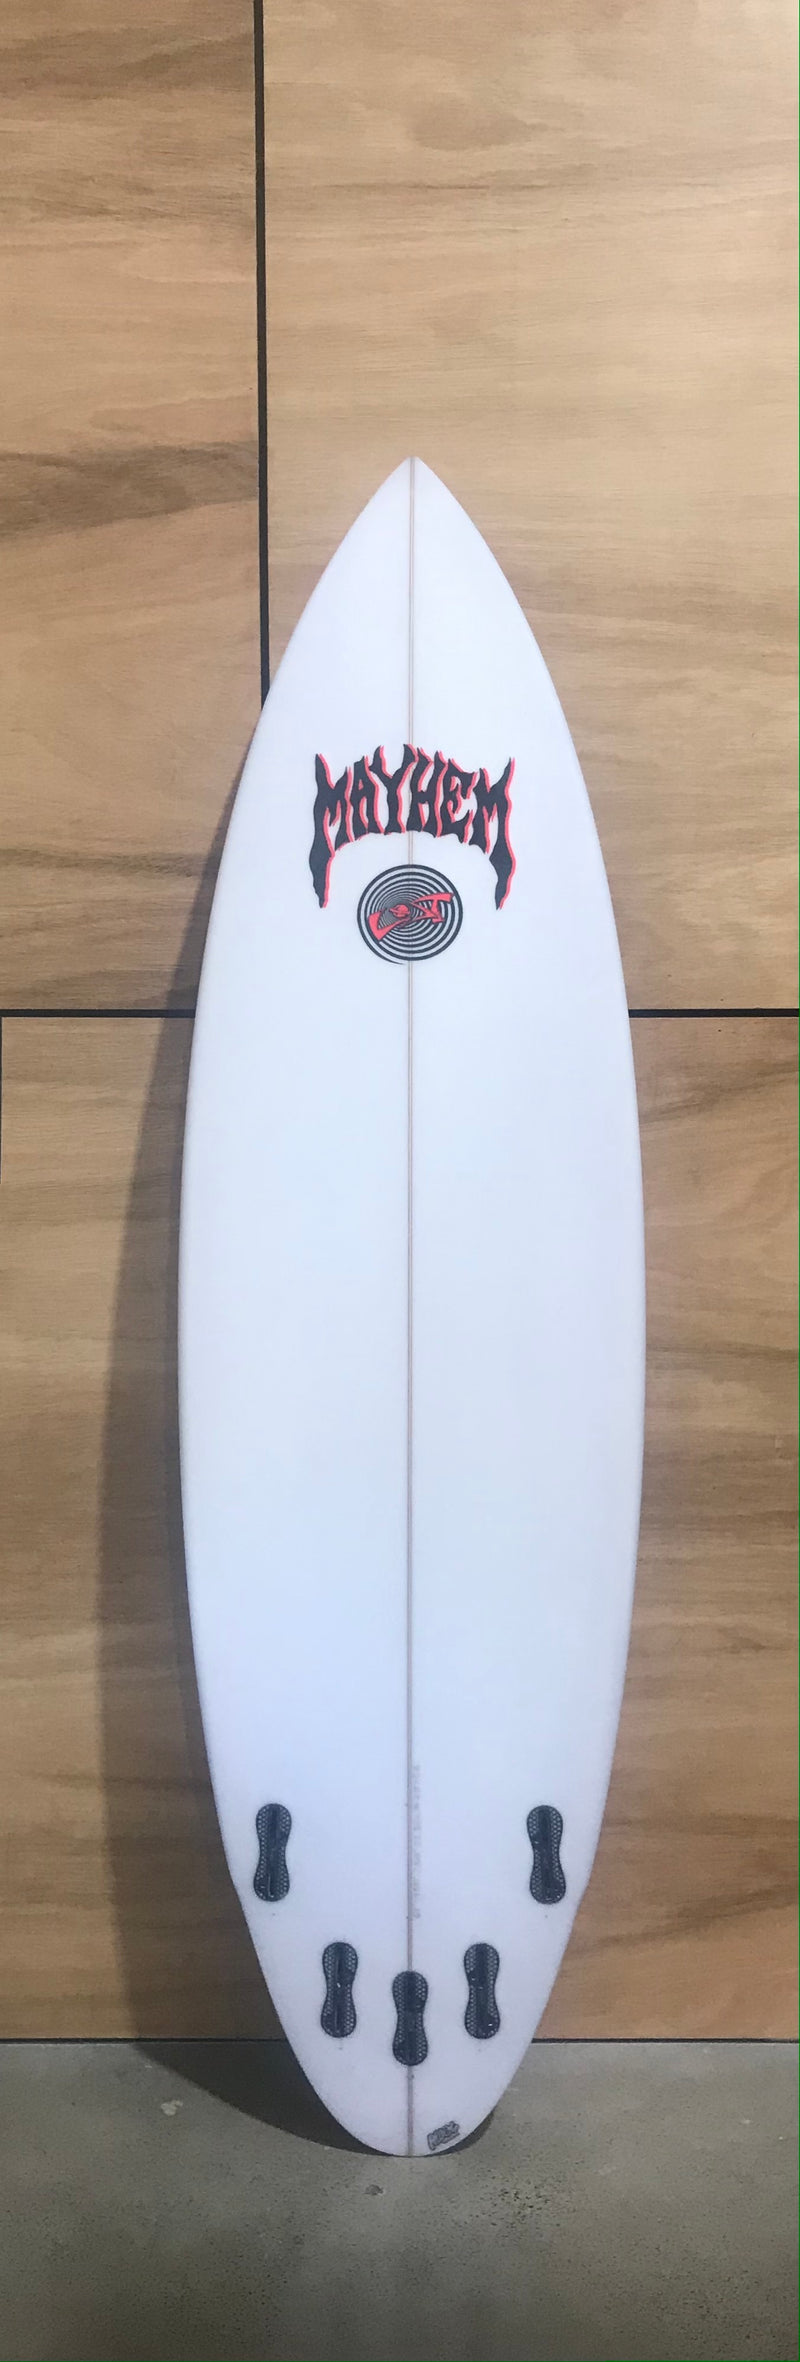 Lost Retro Ripper - Board Store LostSurfboard